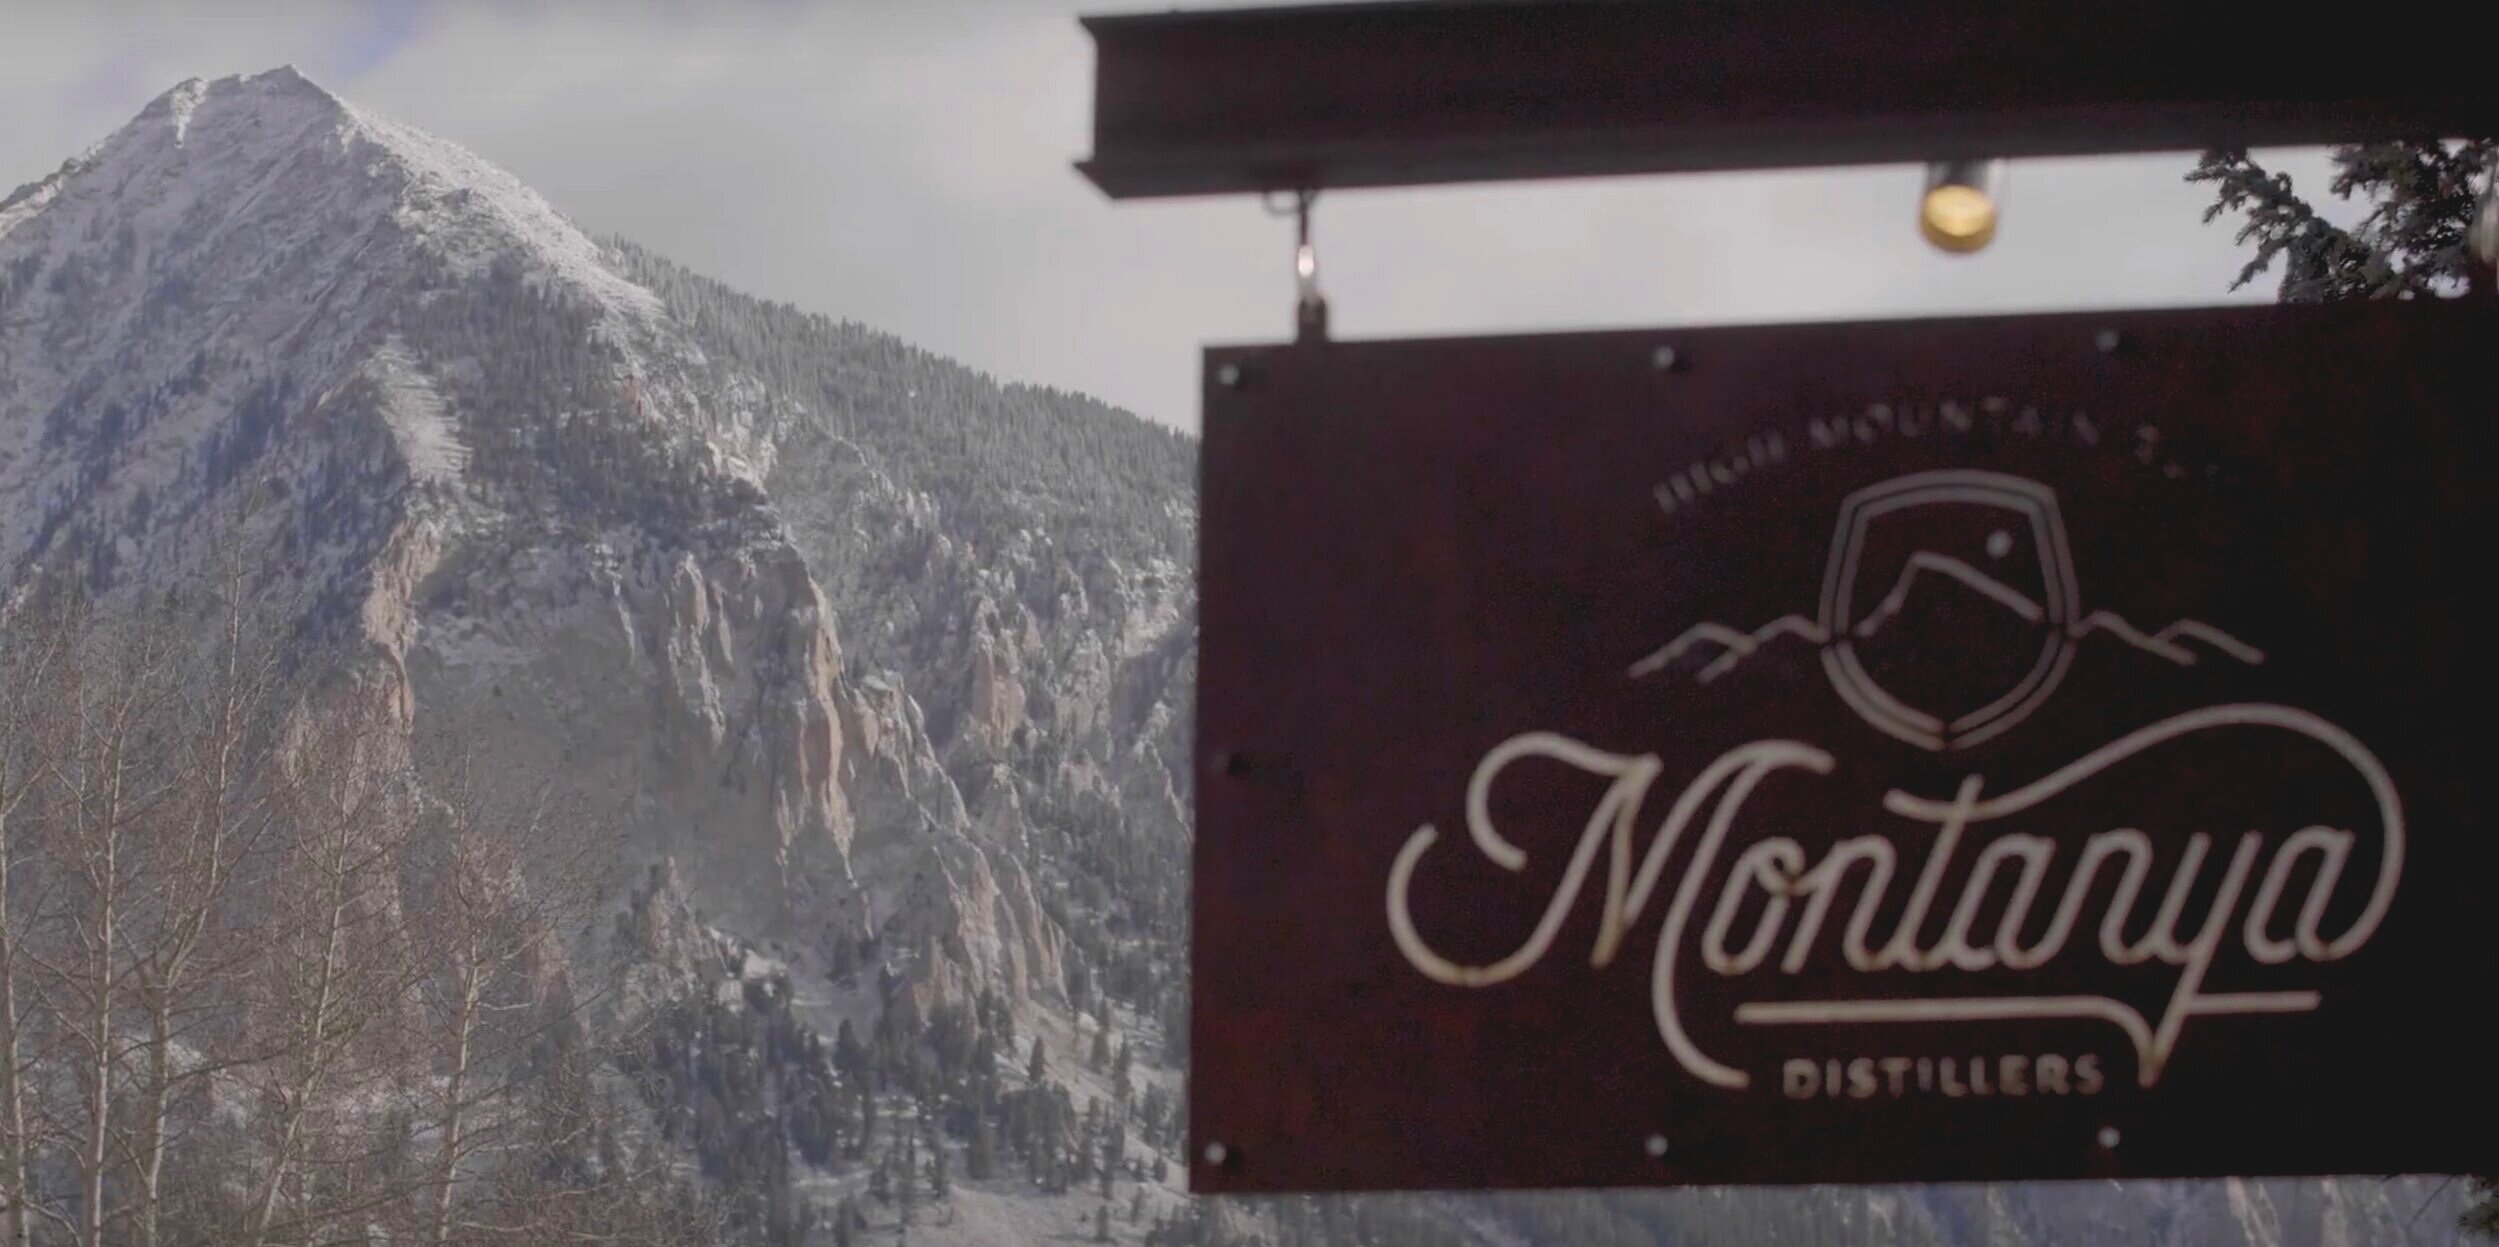 Montanya Distillers sign in front of Crested Butte Mountain Peak.